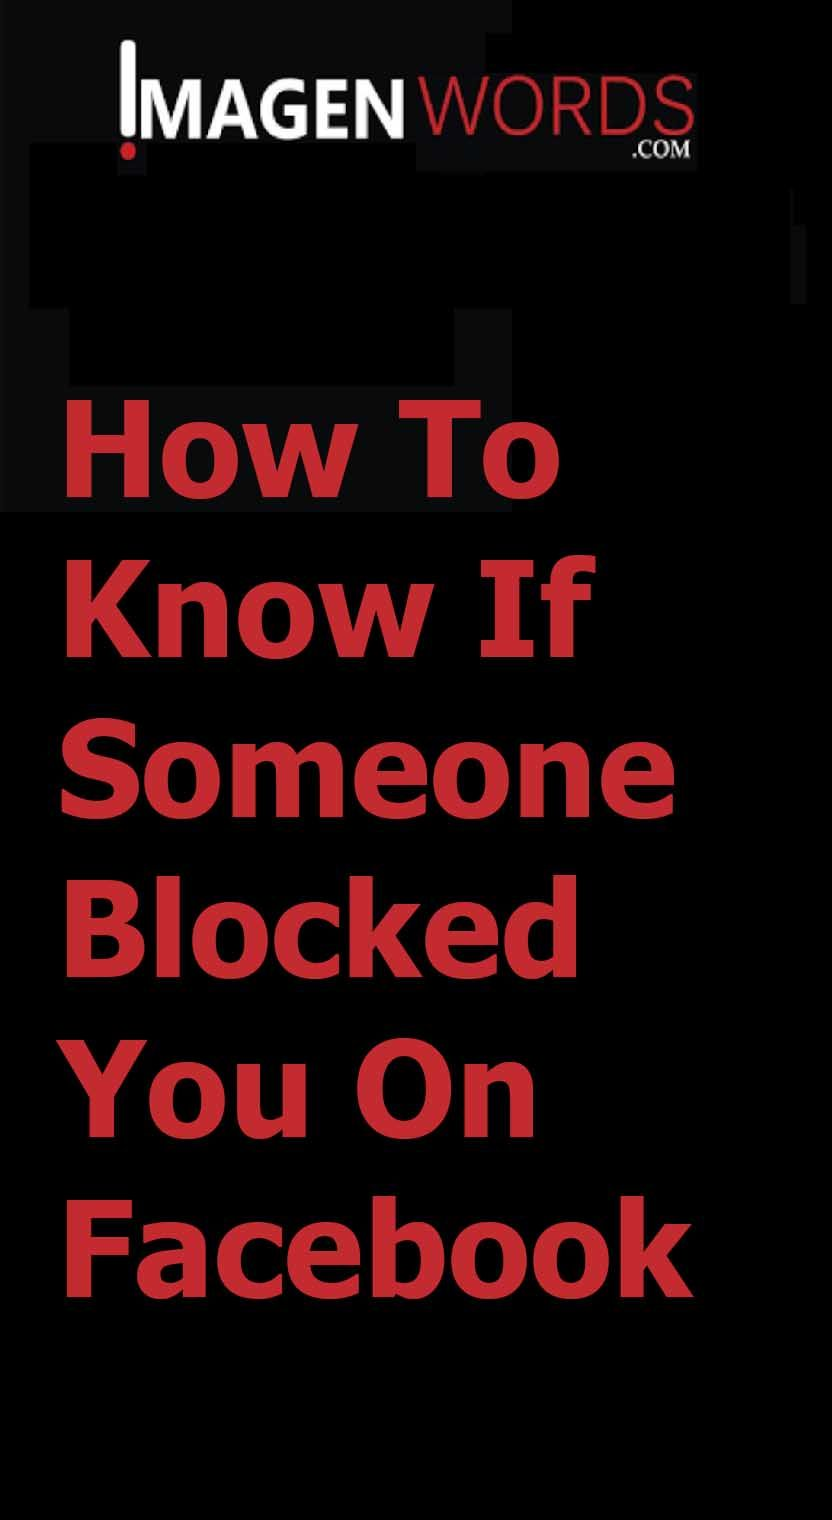 How to know if someone blocked you on facebook imagen